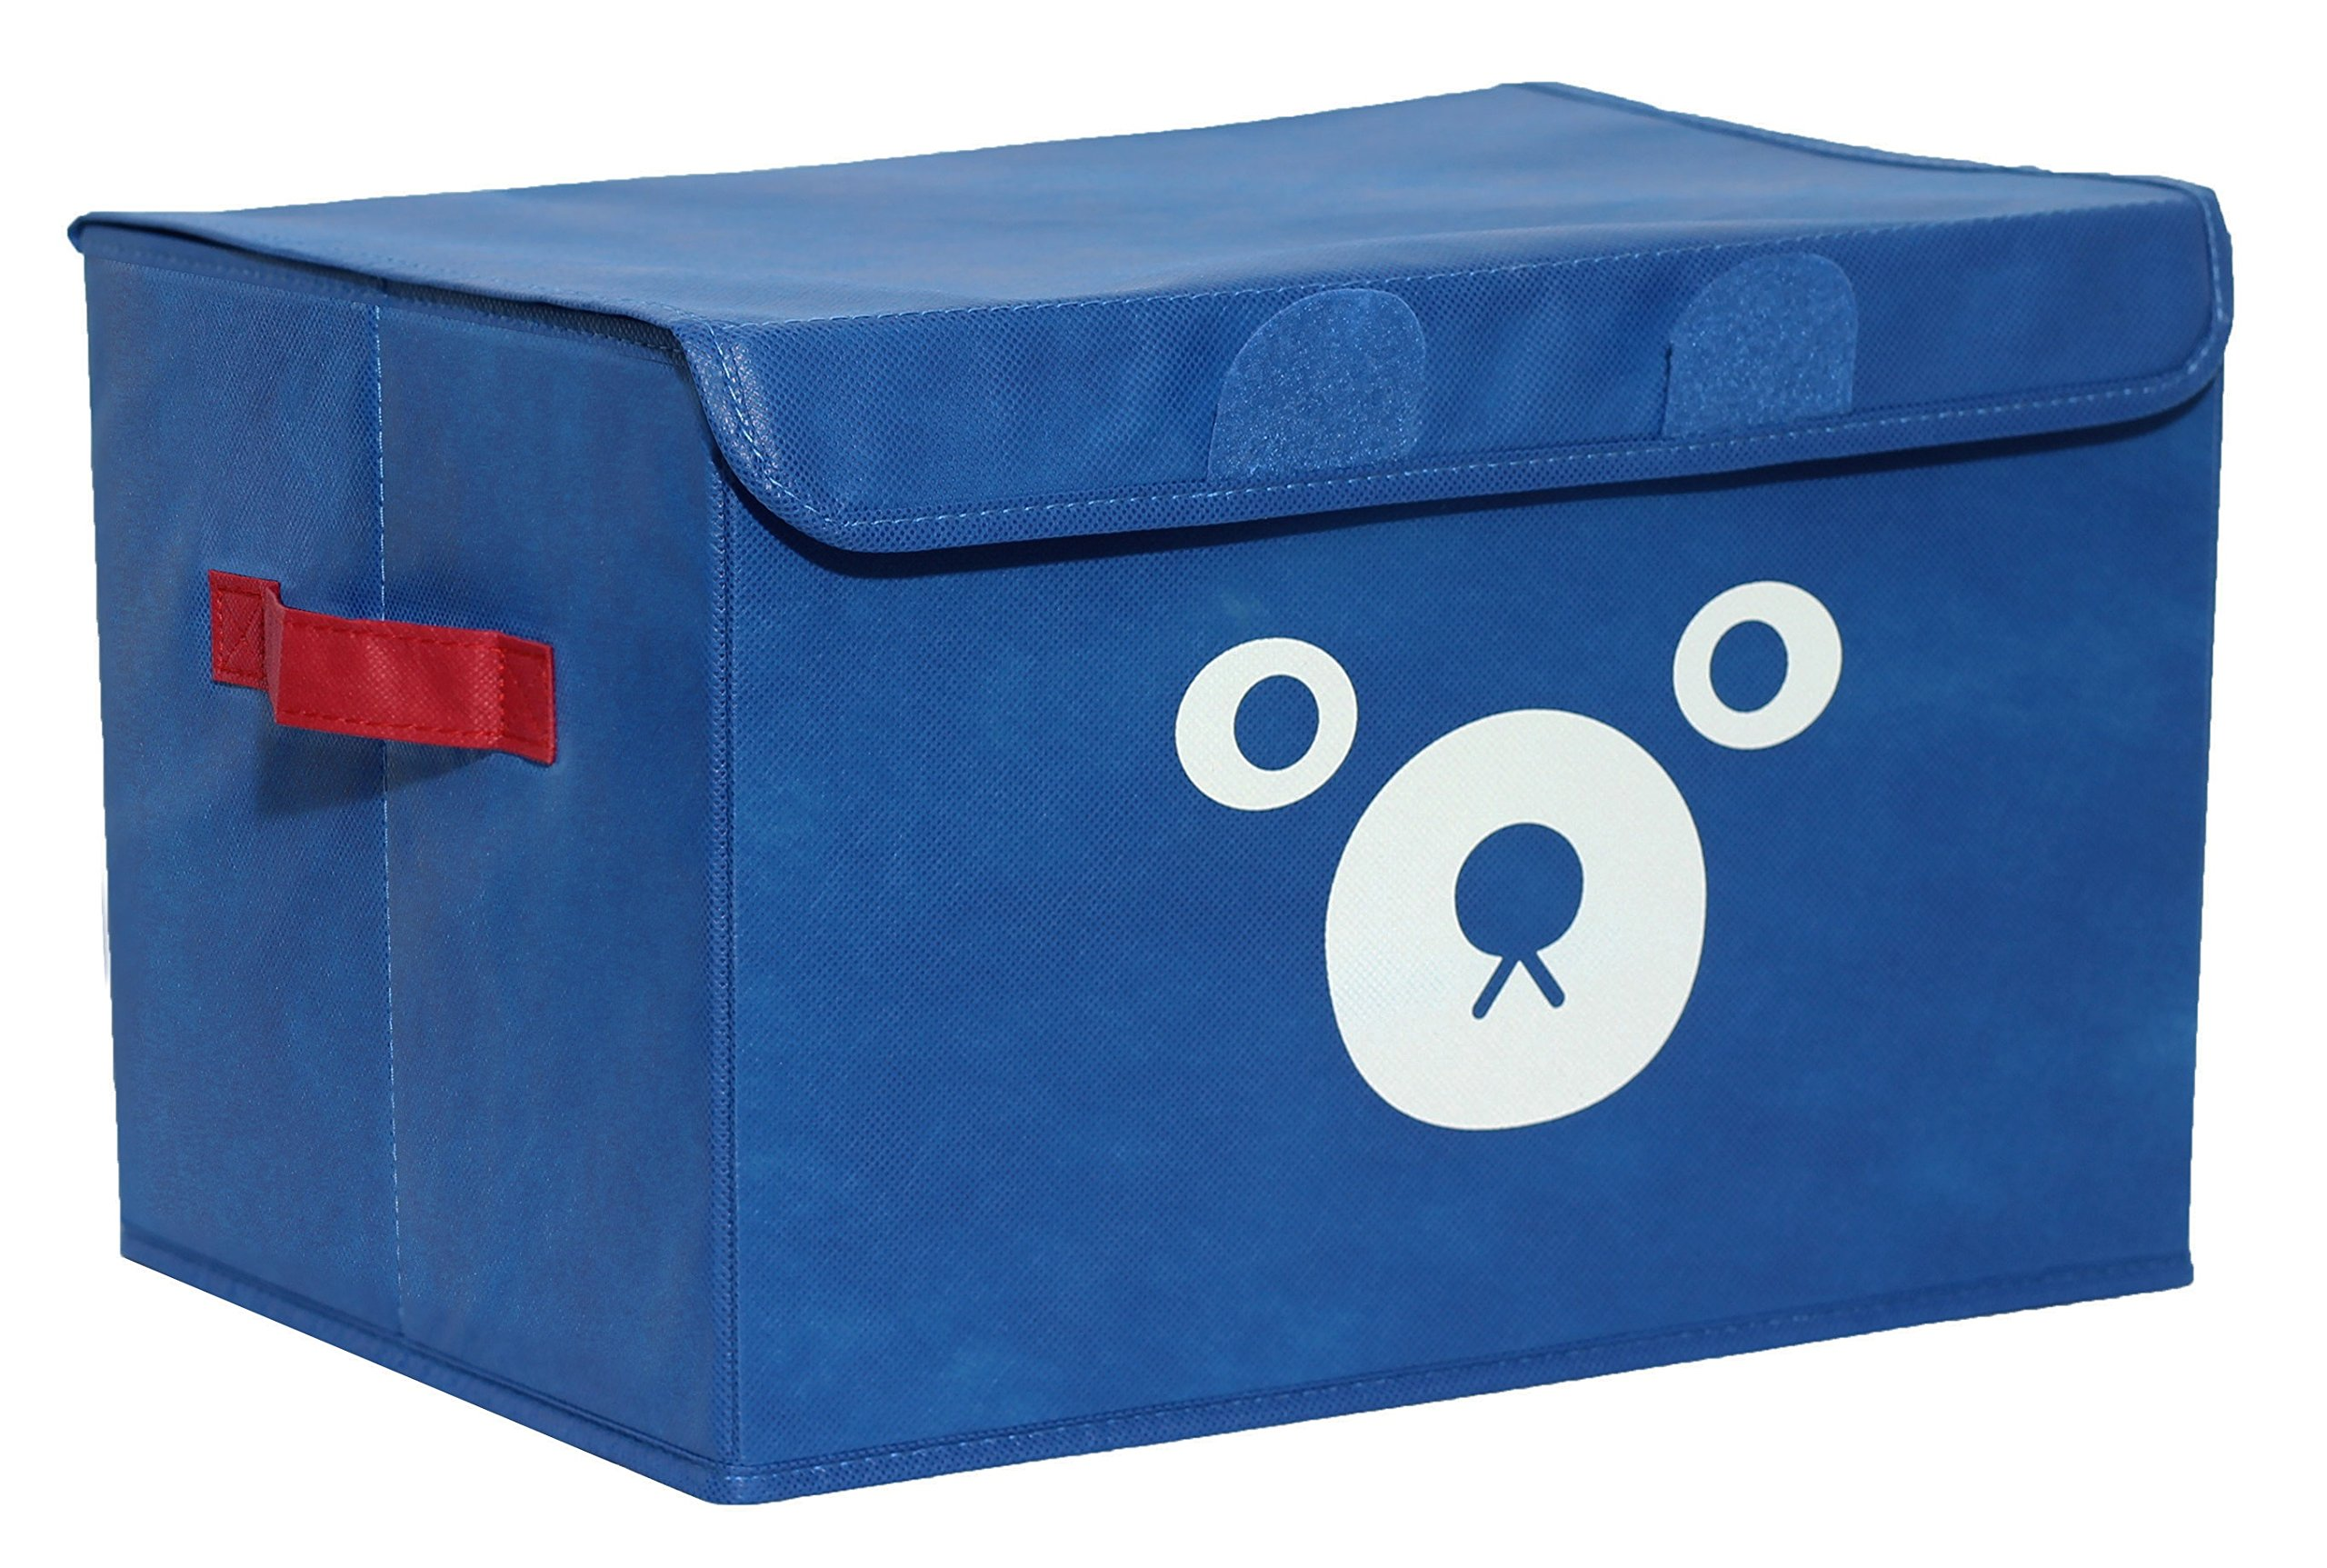 Katabird Storage Bin for Toy Storage, Collapsible Chest Box Toys Organizer with Lid for Kids Playroom, Baby Clothing, Children Books, Stuffed Animal, Gift Baskets by Katabird